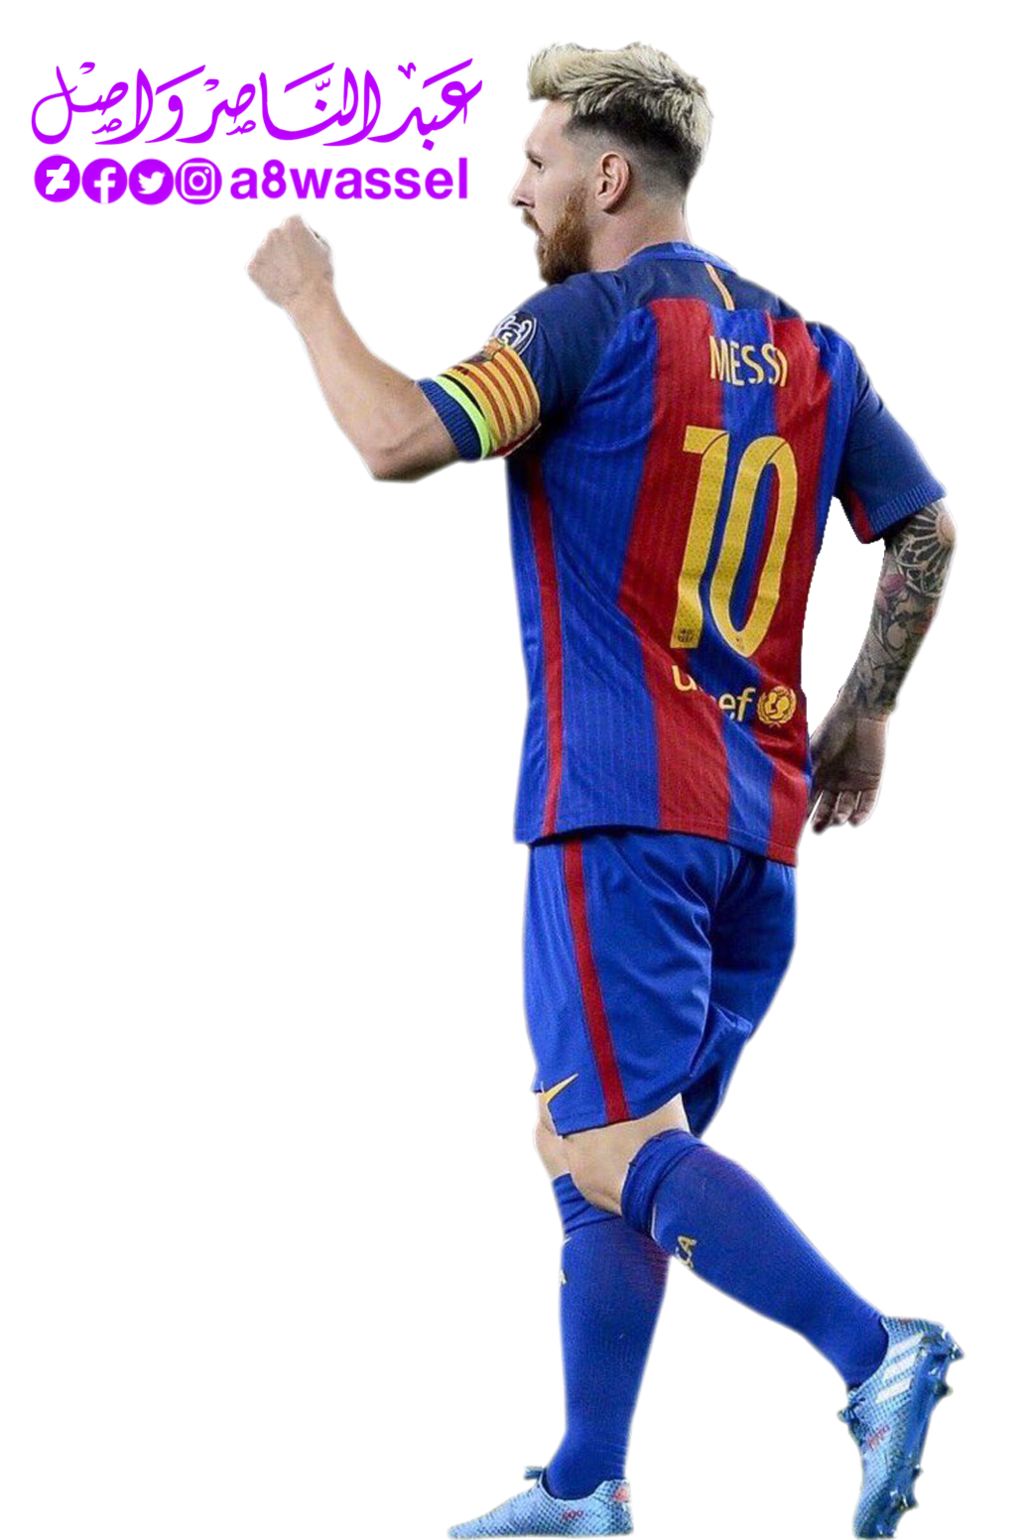 Lionel messi png 2017. Barcelona by a wassel